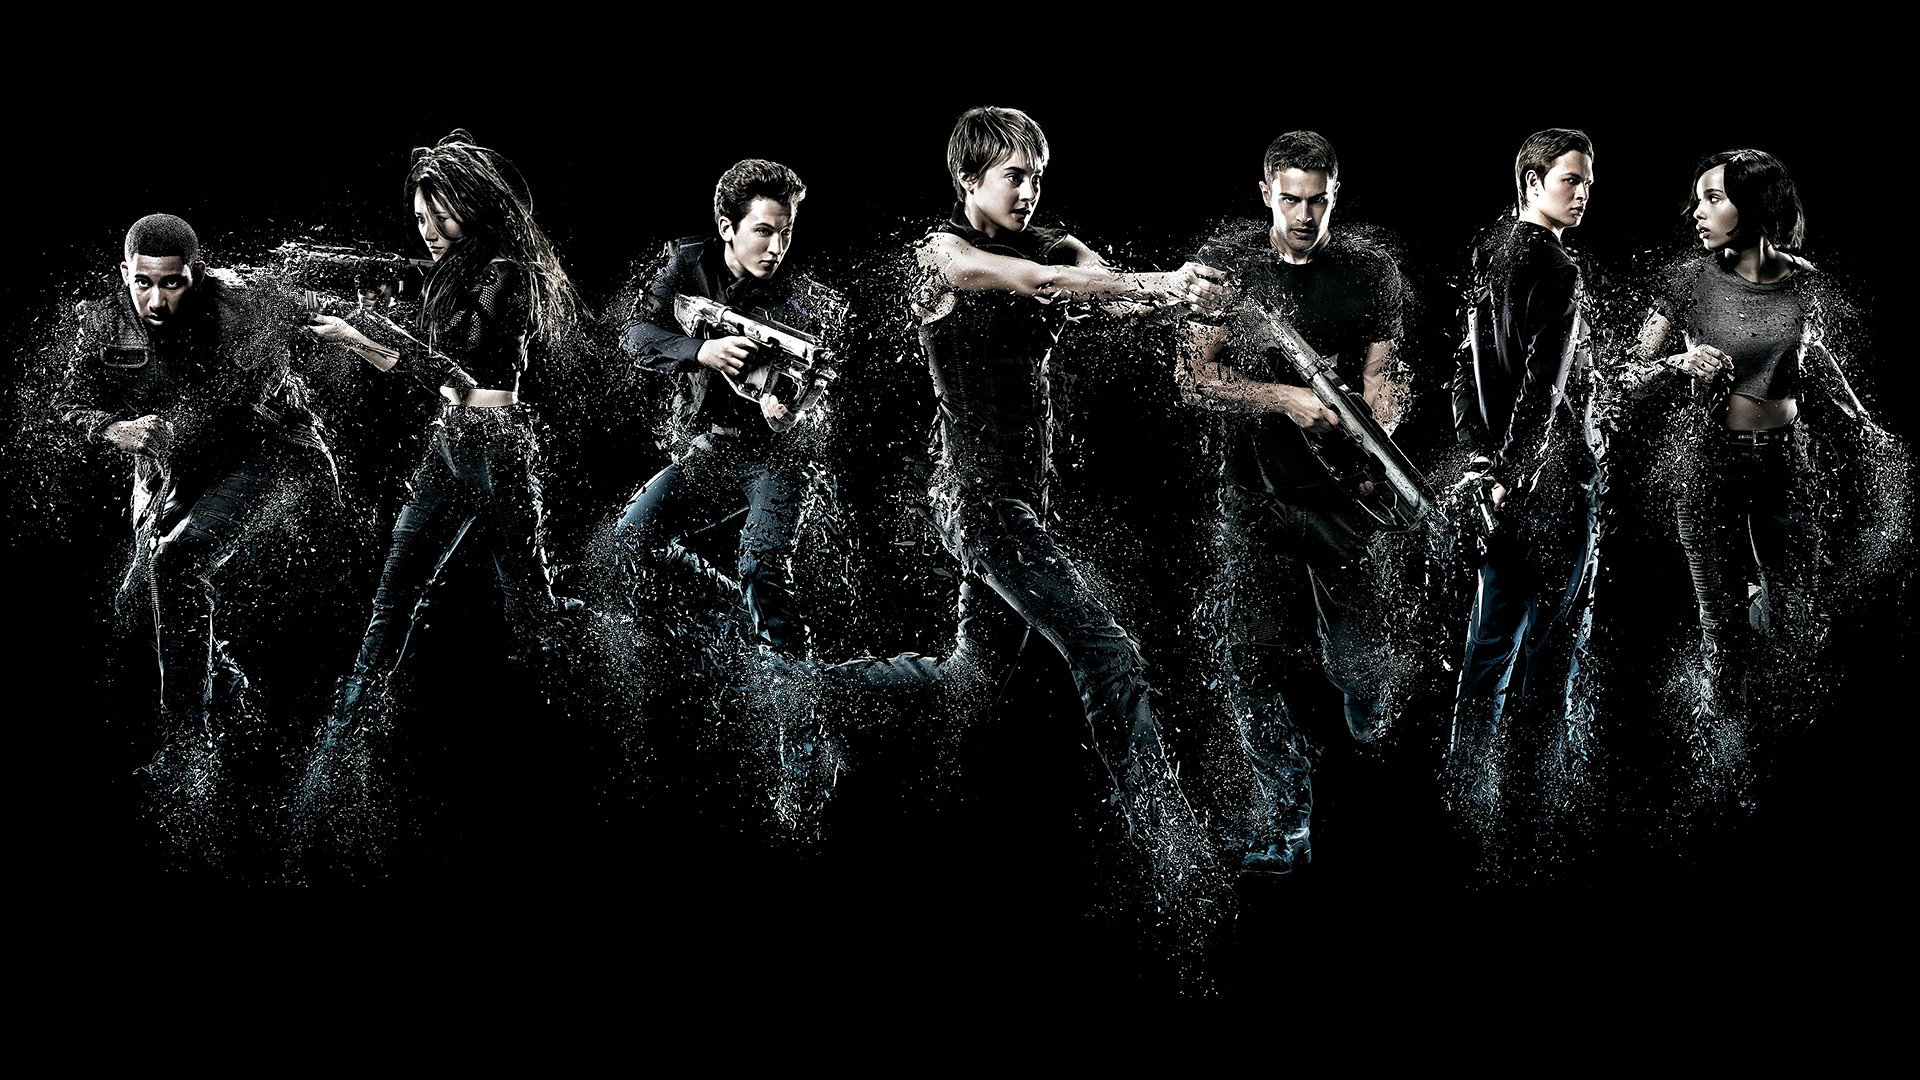 insurgent wallpaper 48657